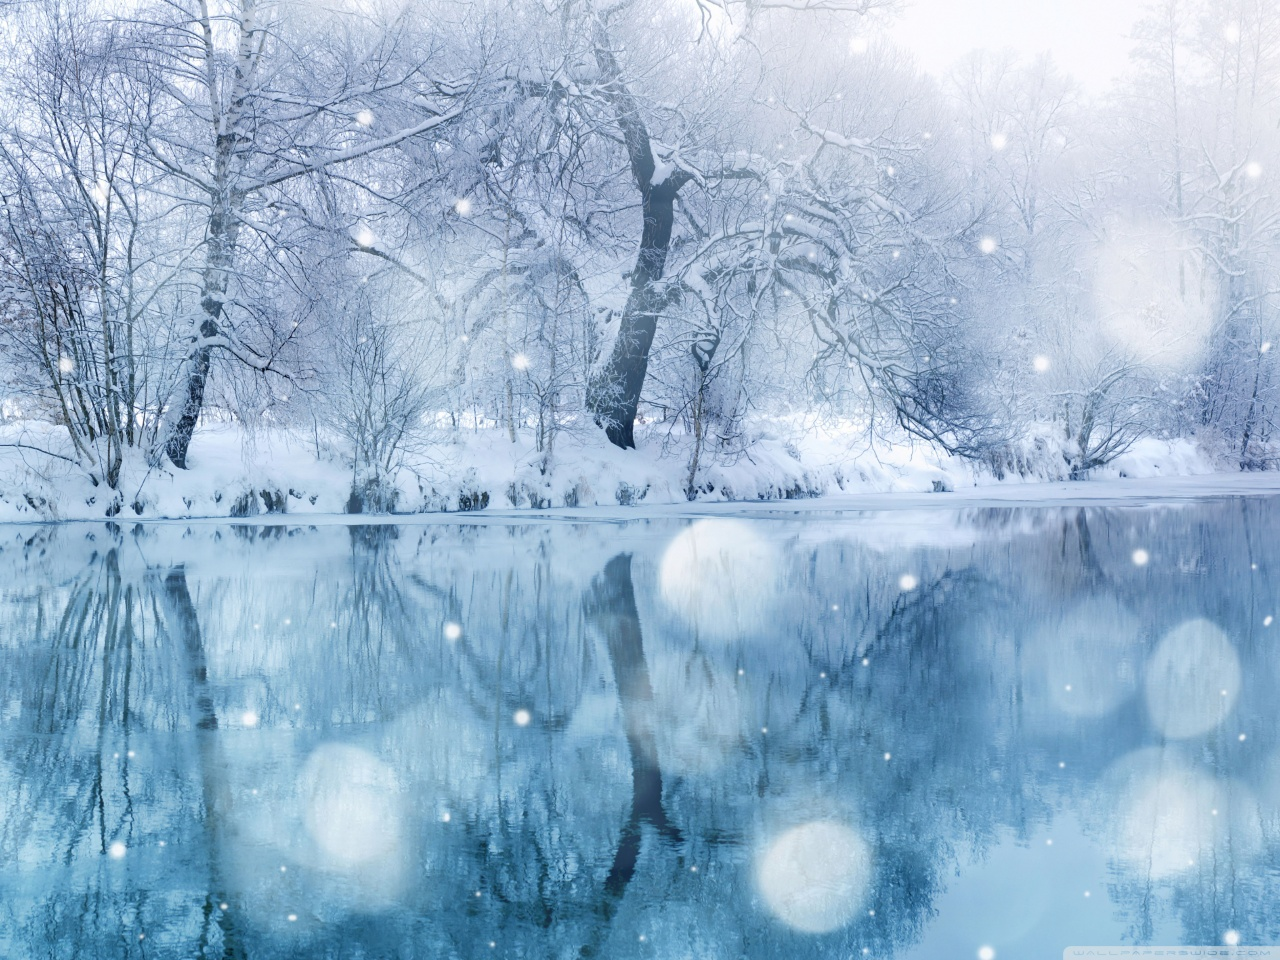 ��� ������ ���� ���� ������ 2014 , ��� ����� ������ ����� ������ 2014 snow wallpaper hd